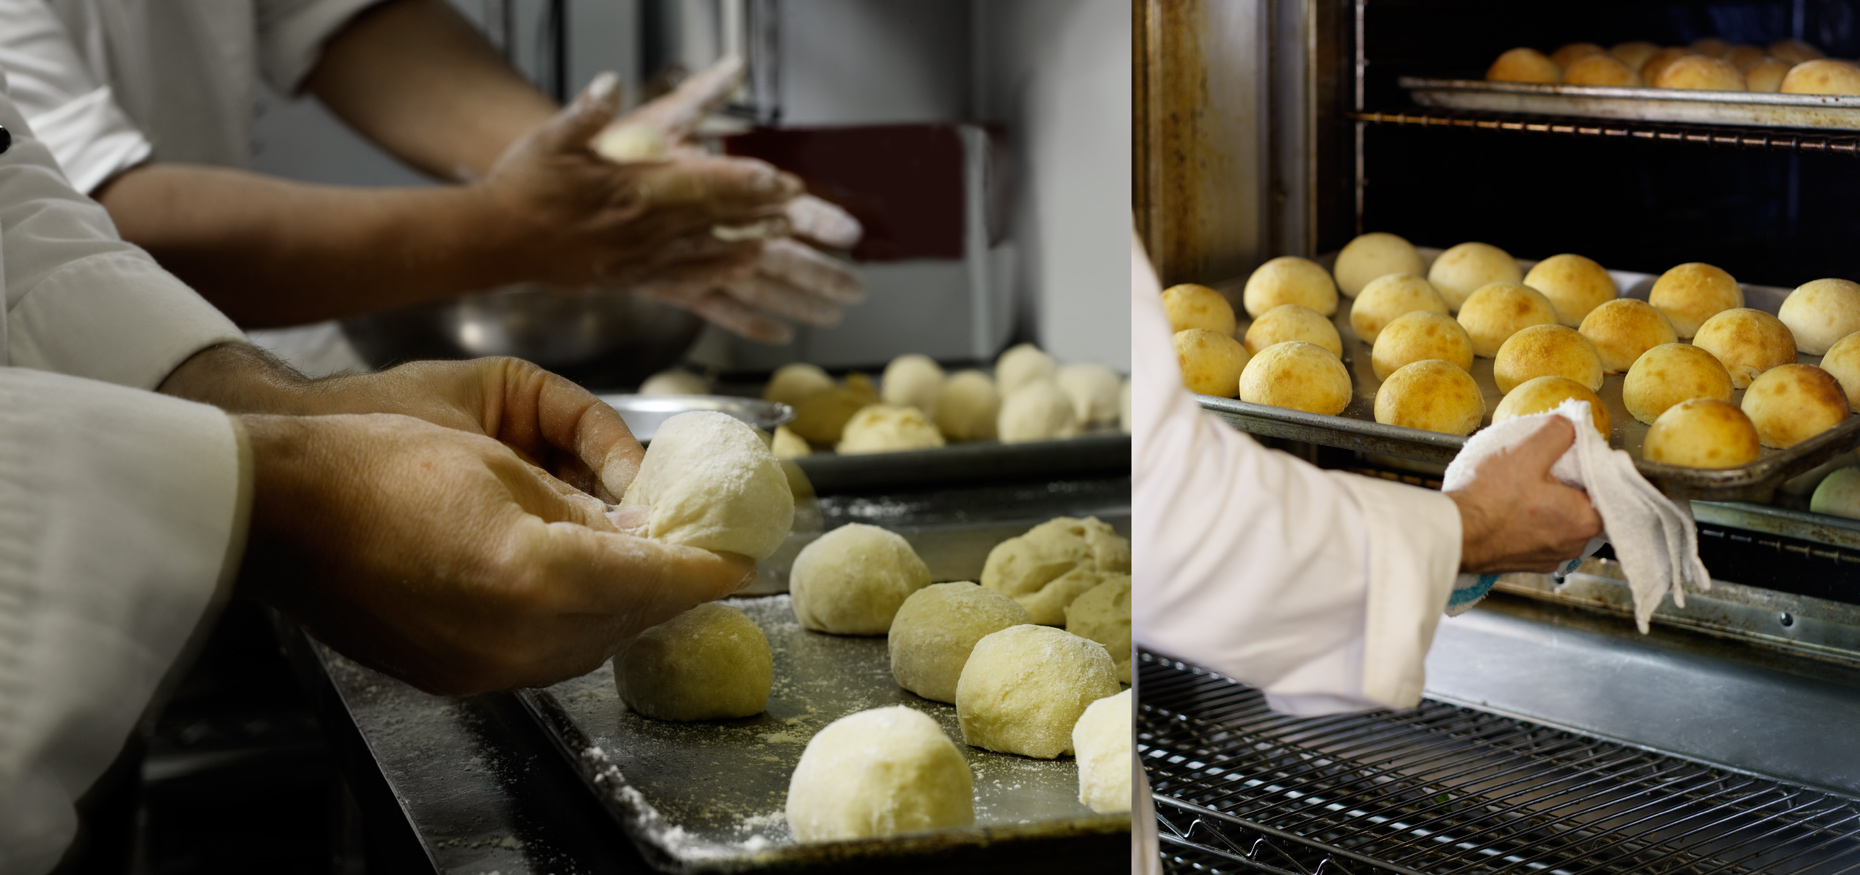 Making bread rolls